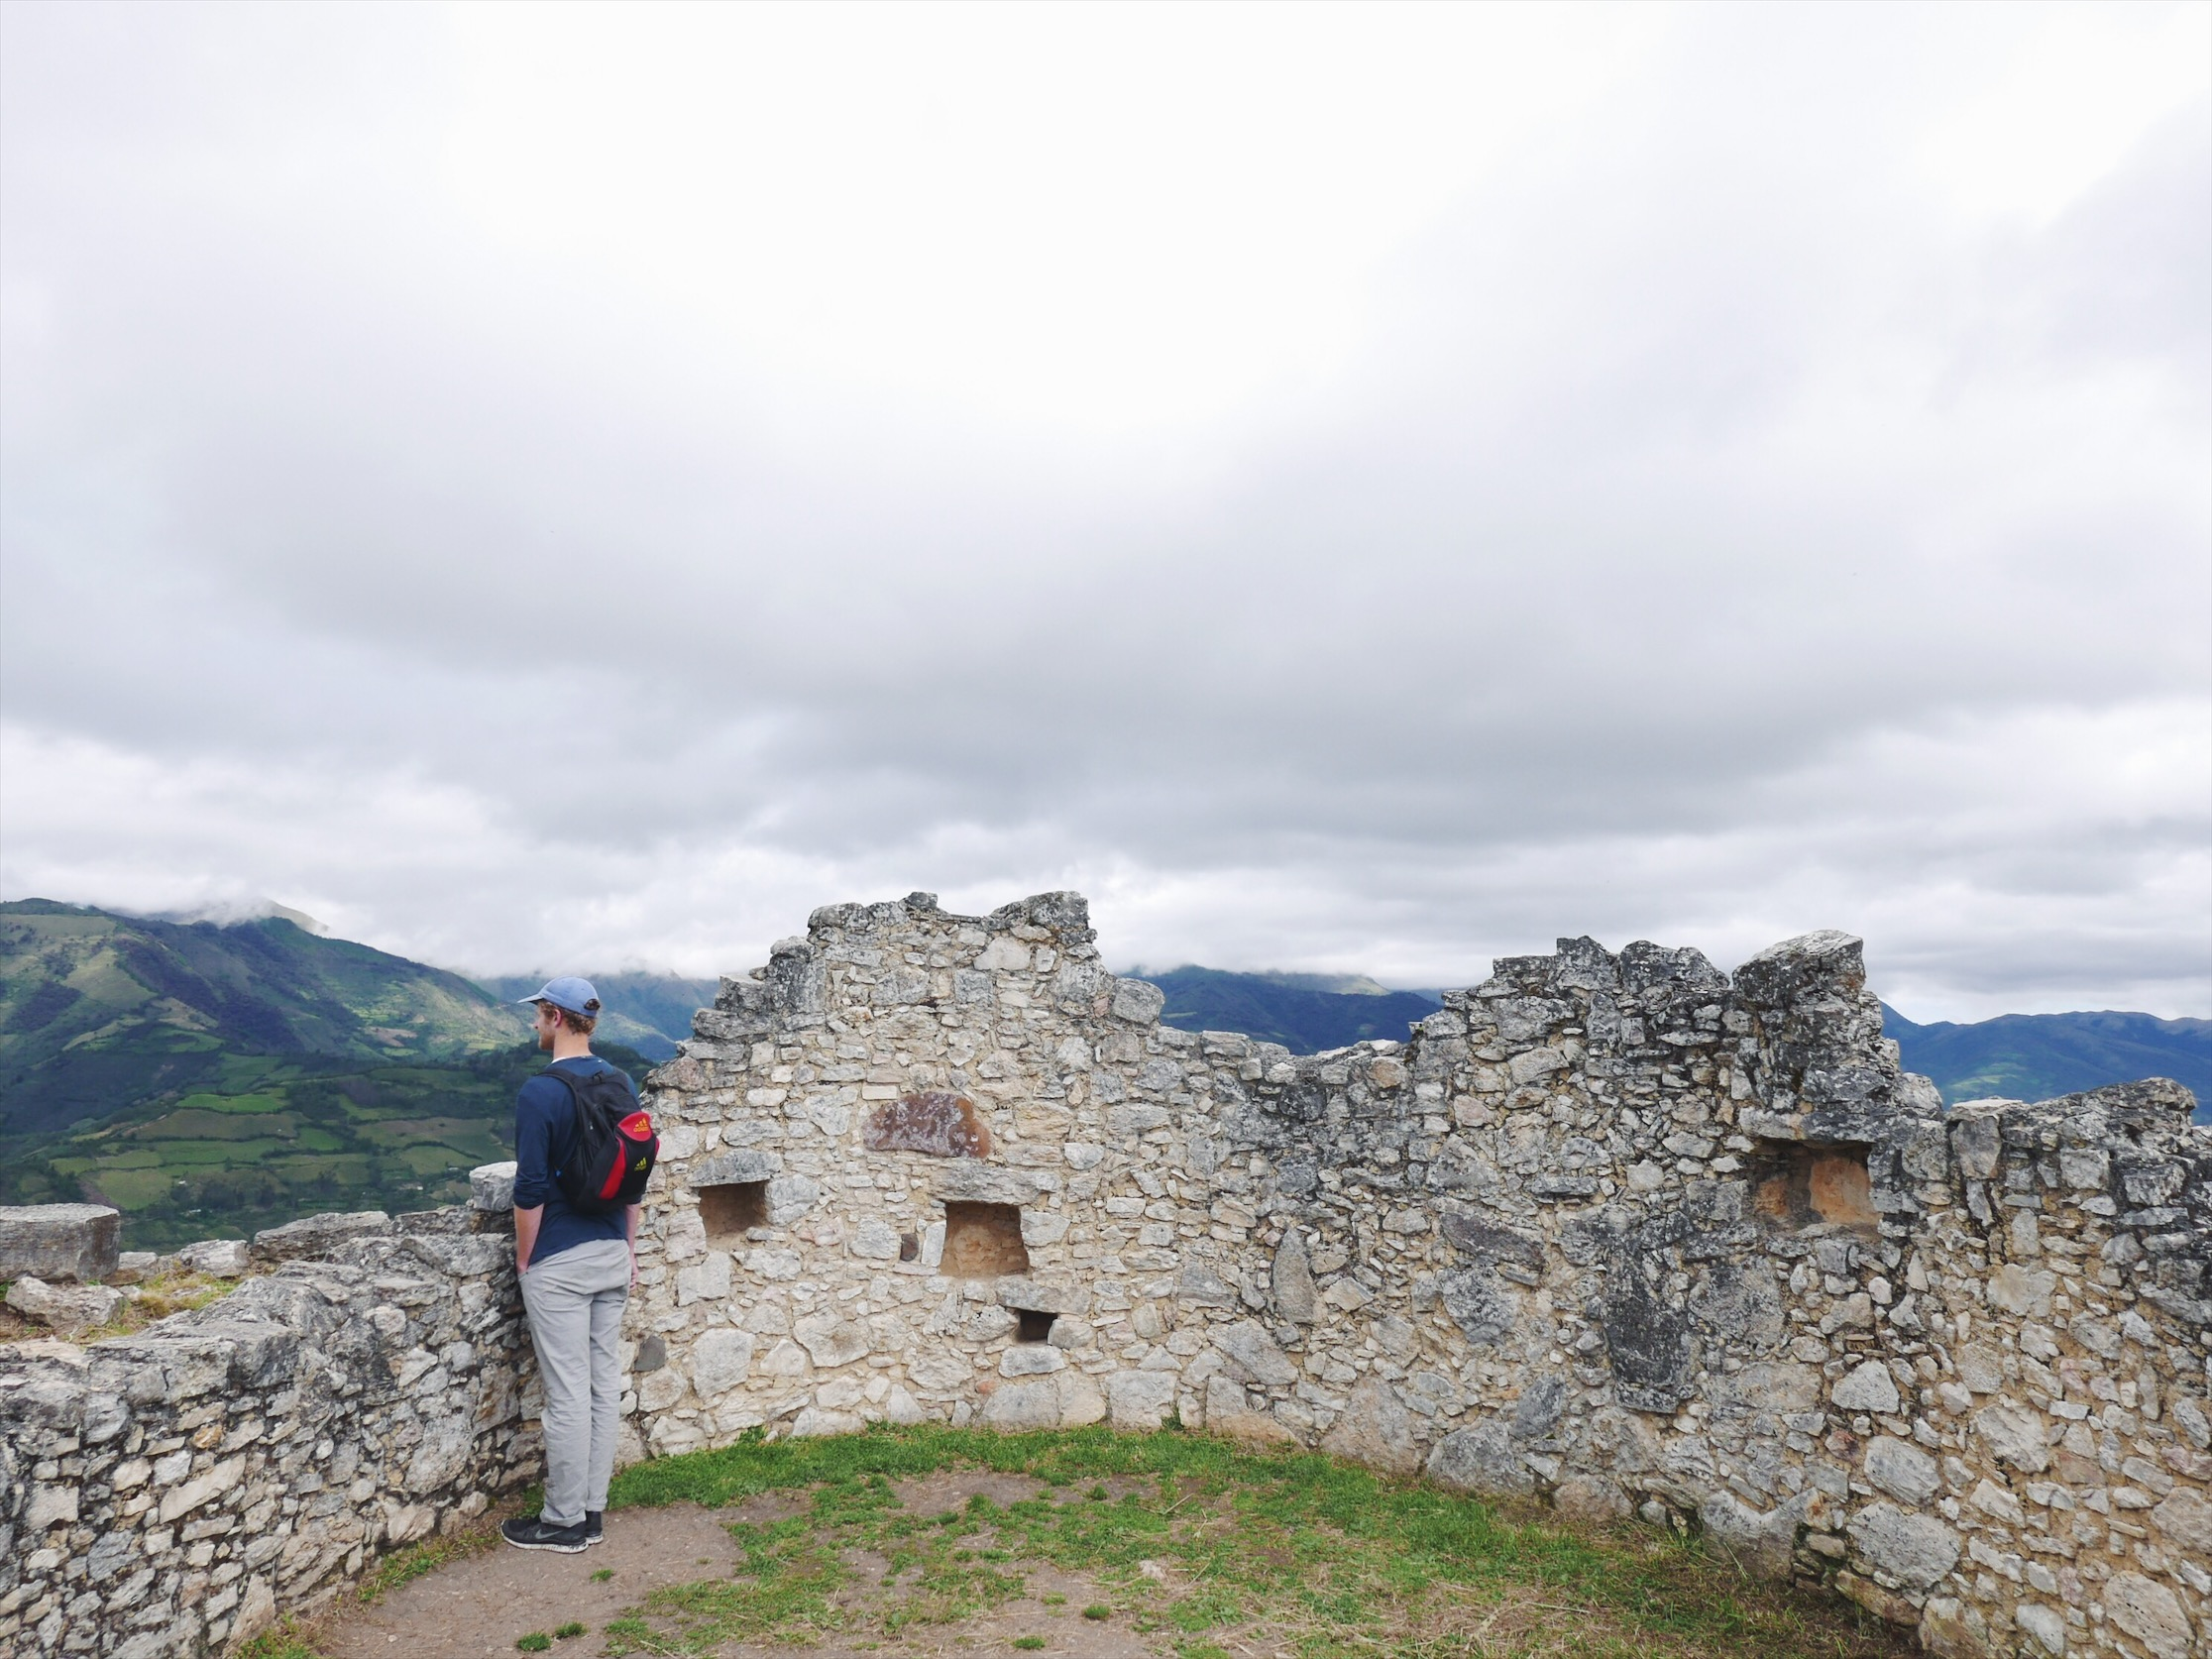 There are over 550 circular structures on site, home to some 3,000 inhabitants back in the day.